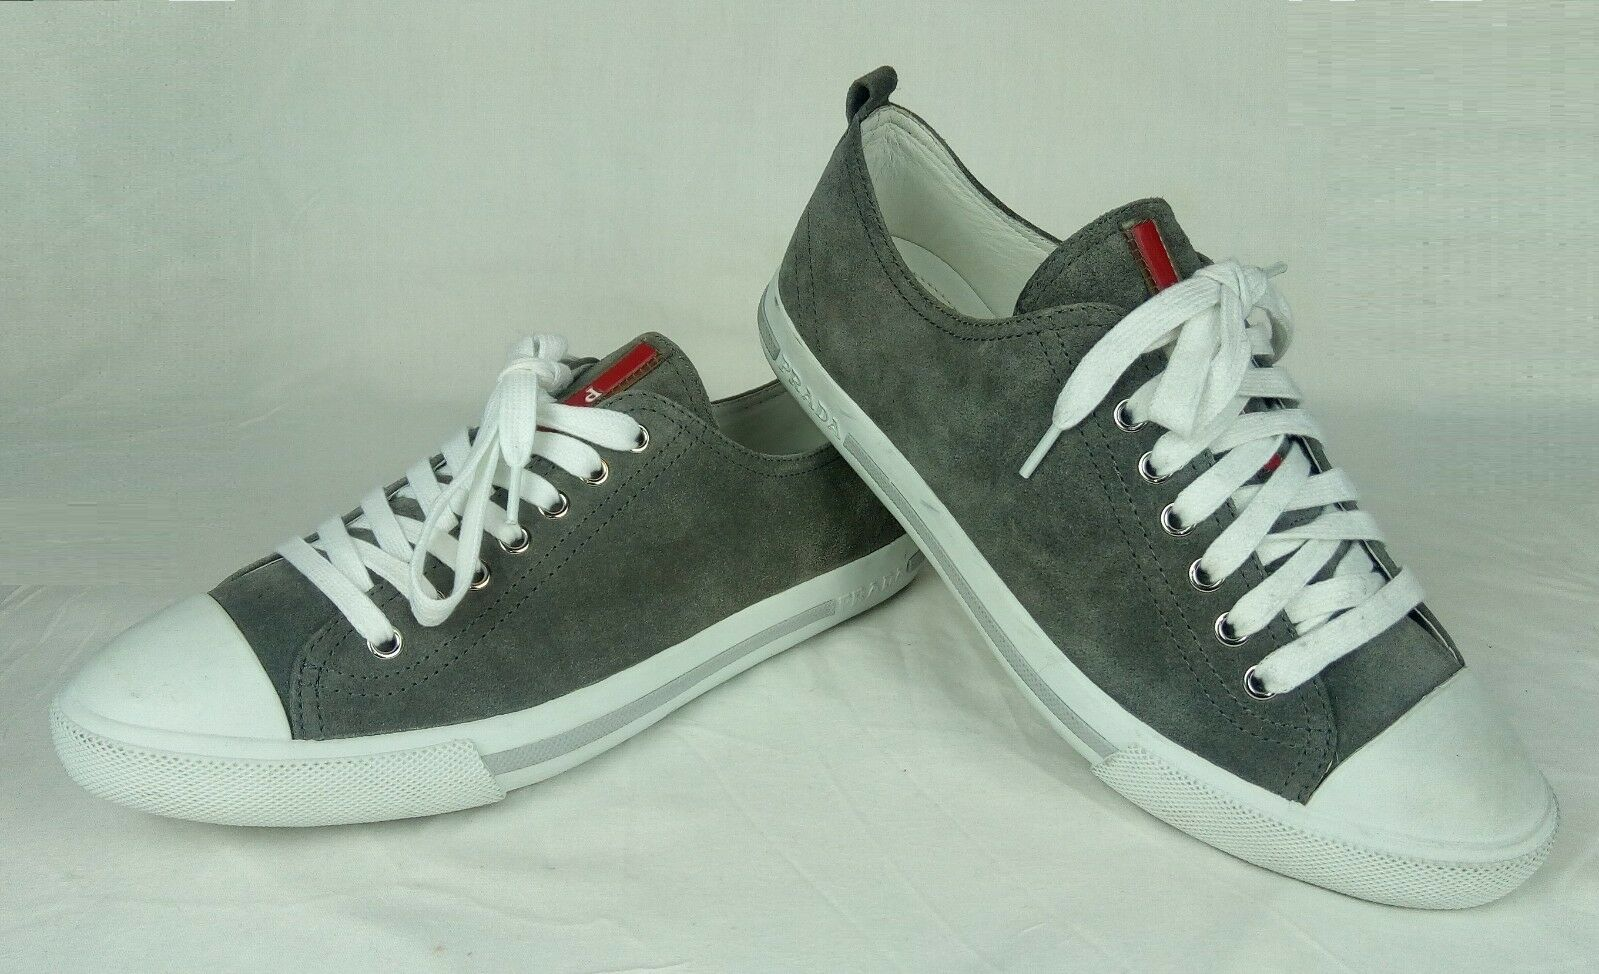 100% Authentic PRADA Suede Lace-up Schuhes Sneakers MINT 6 (Fit 7.5) /40.5 MINT Sneakers febe71